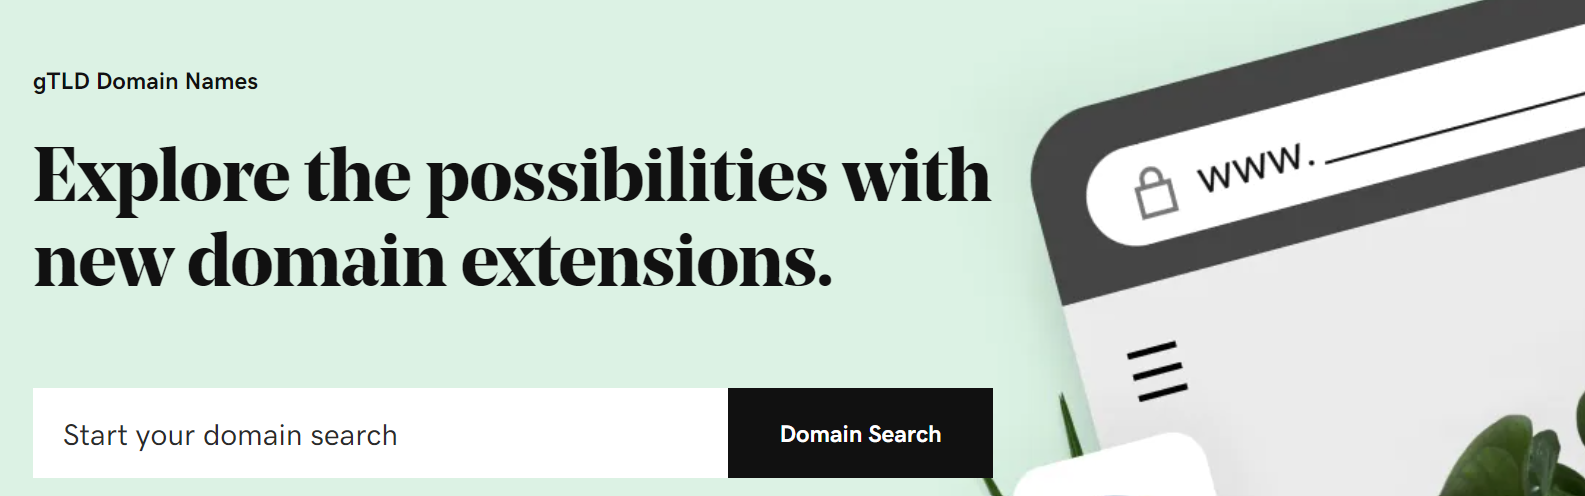 searching domain on Godaddy